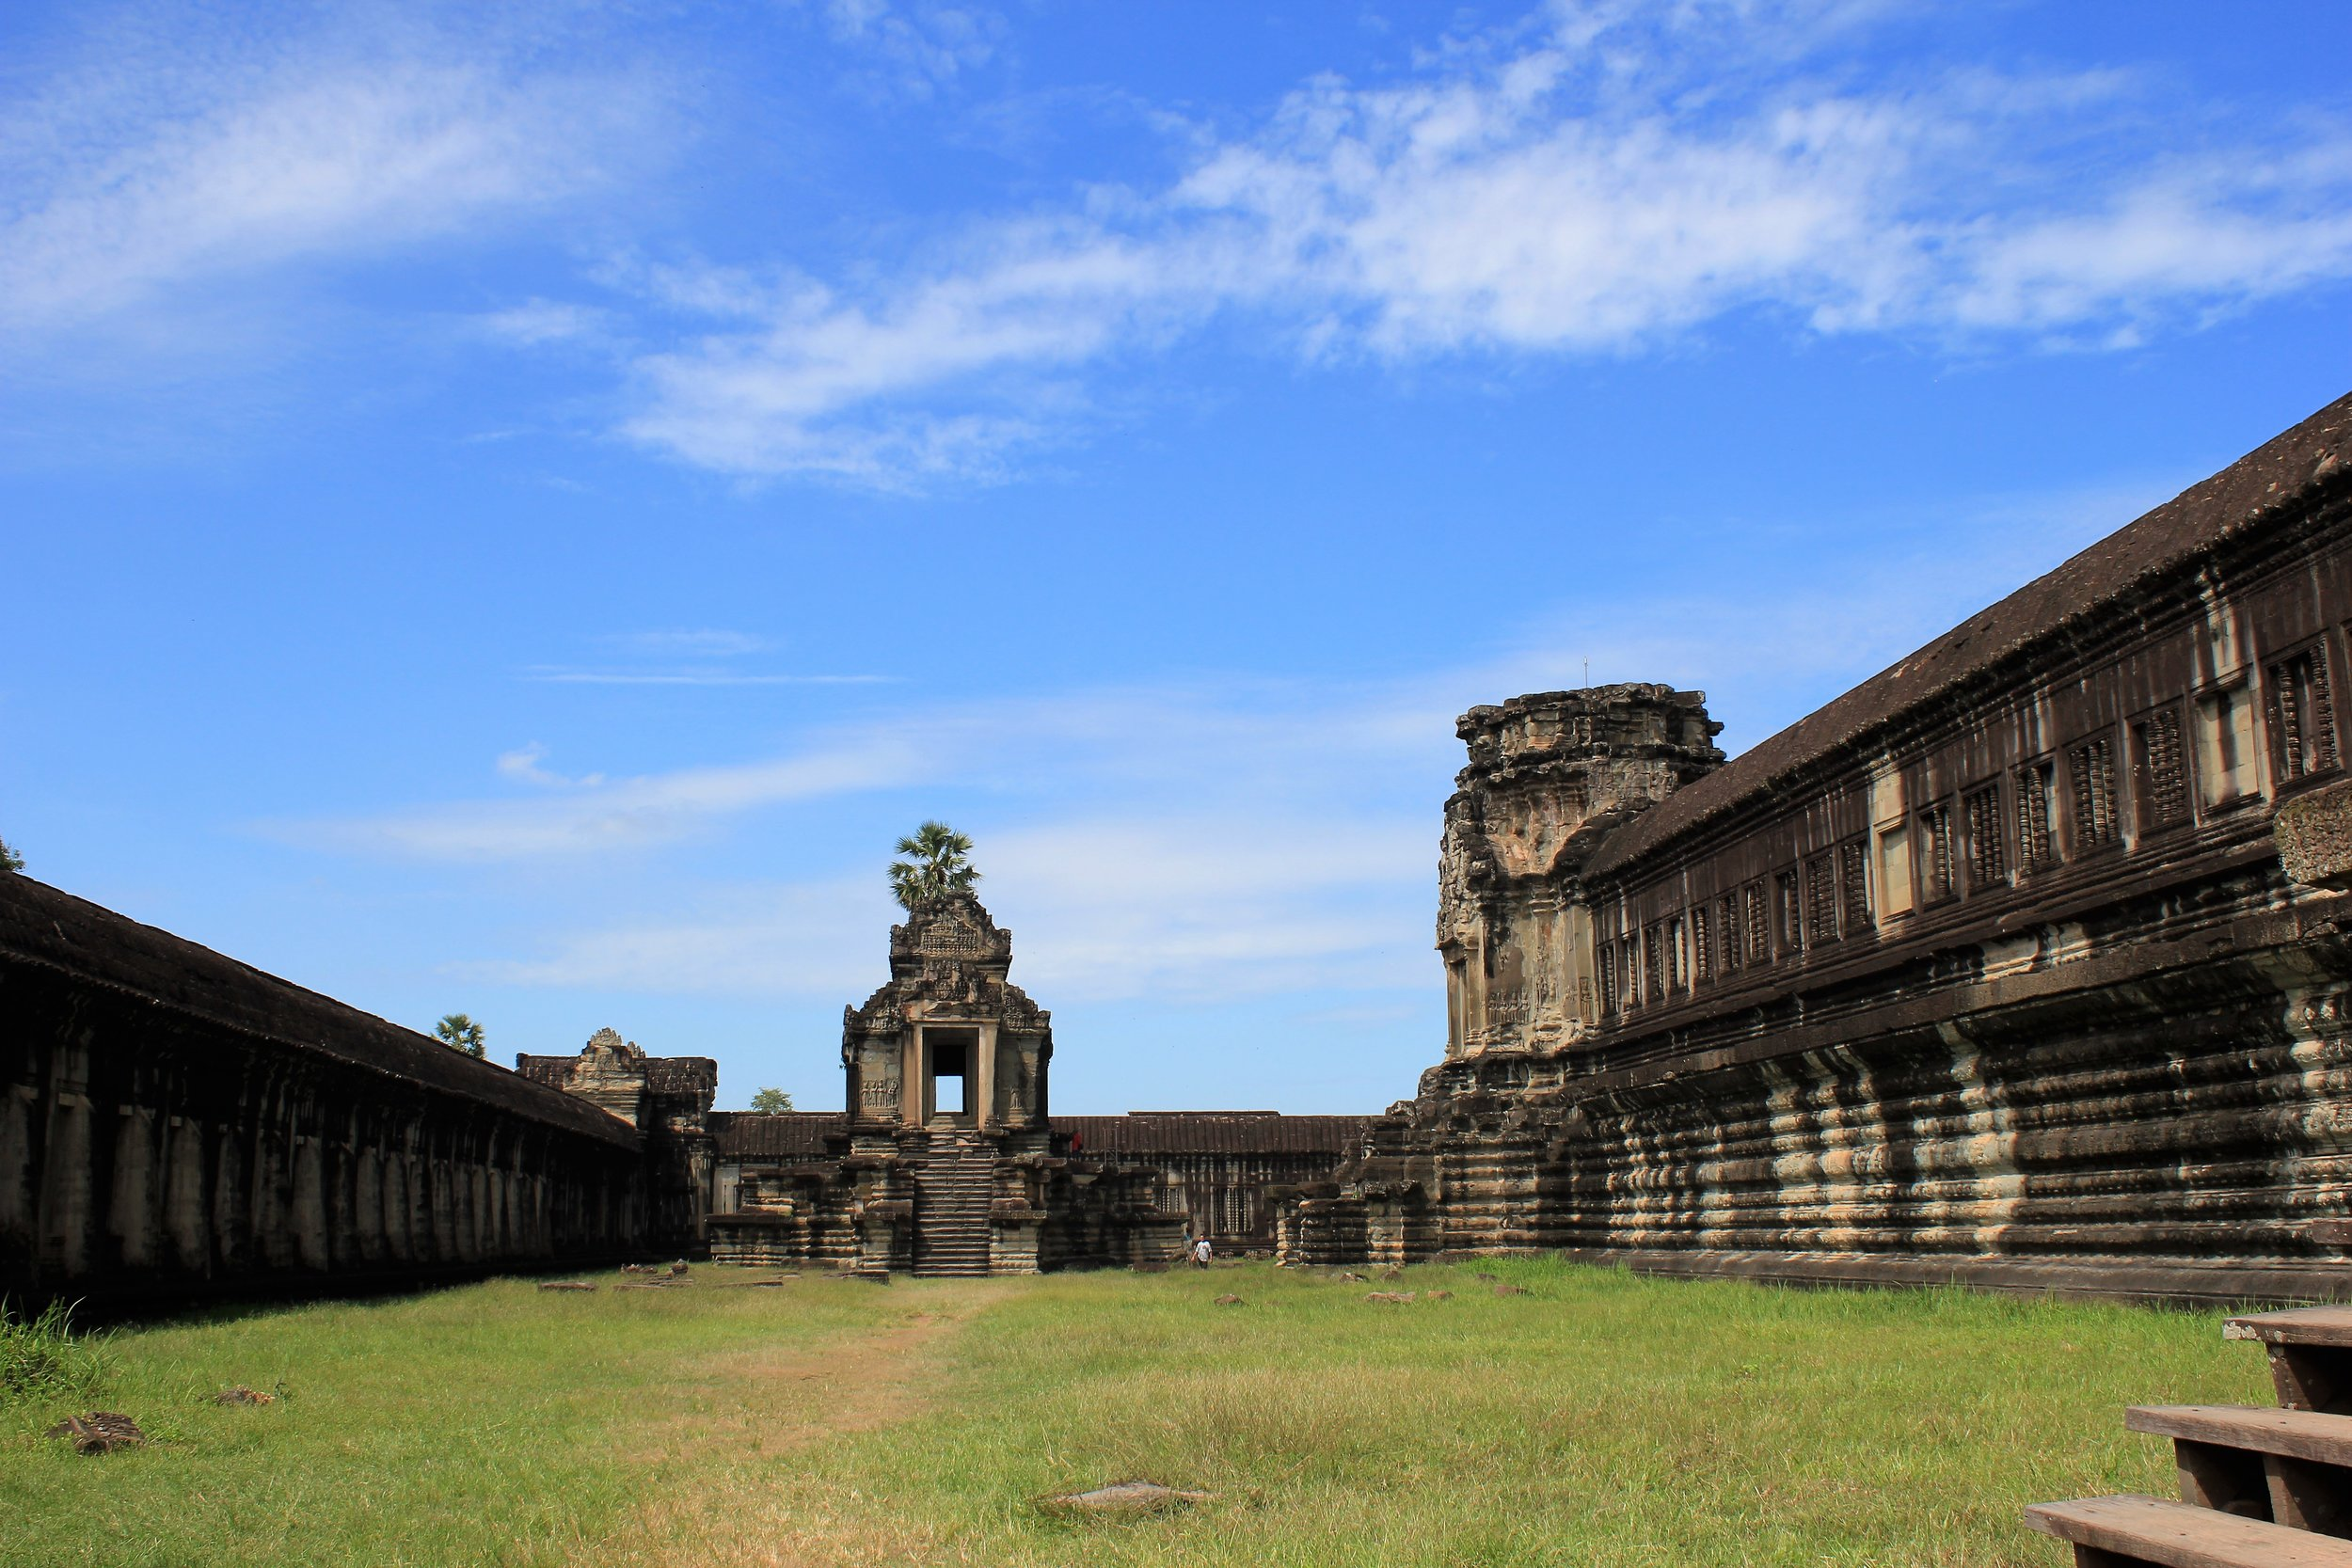 The Angkor Wat Complex